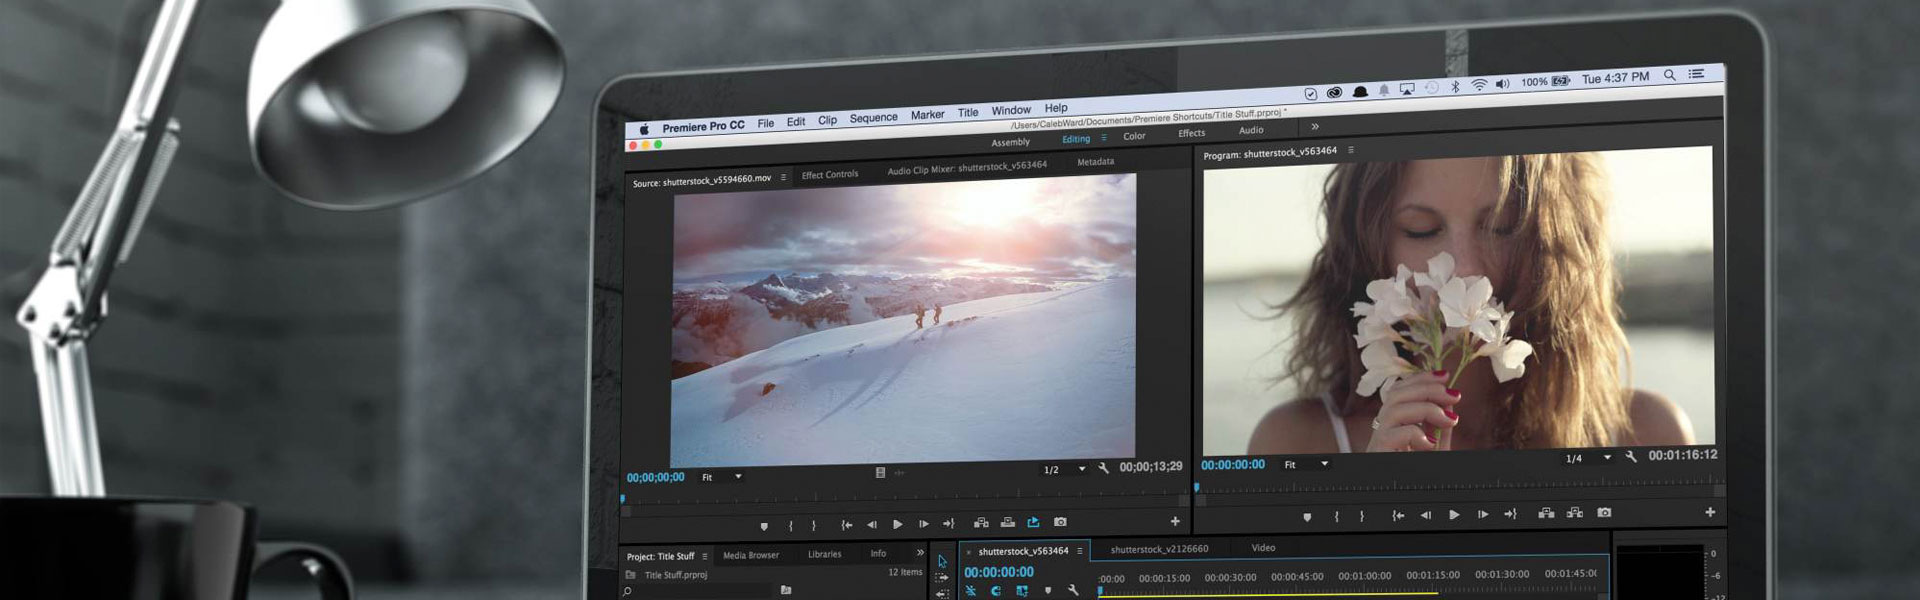 adobe premiere pro cs6 the complete video editing course free download